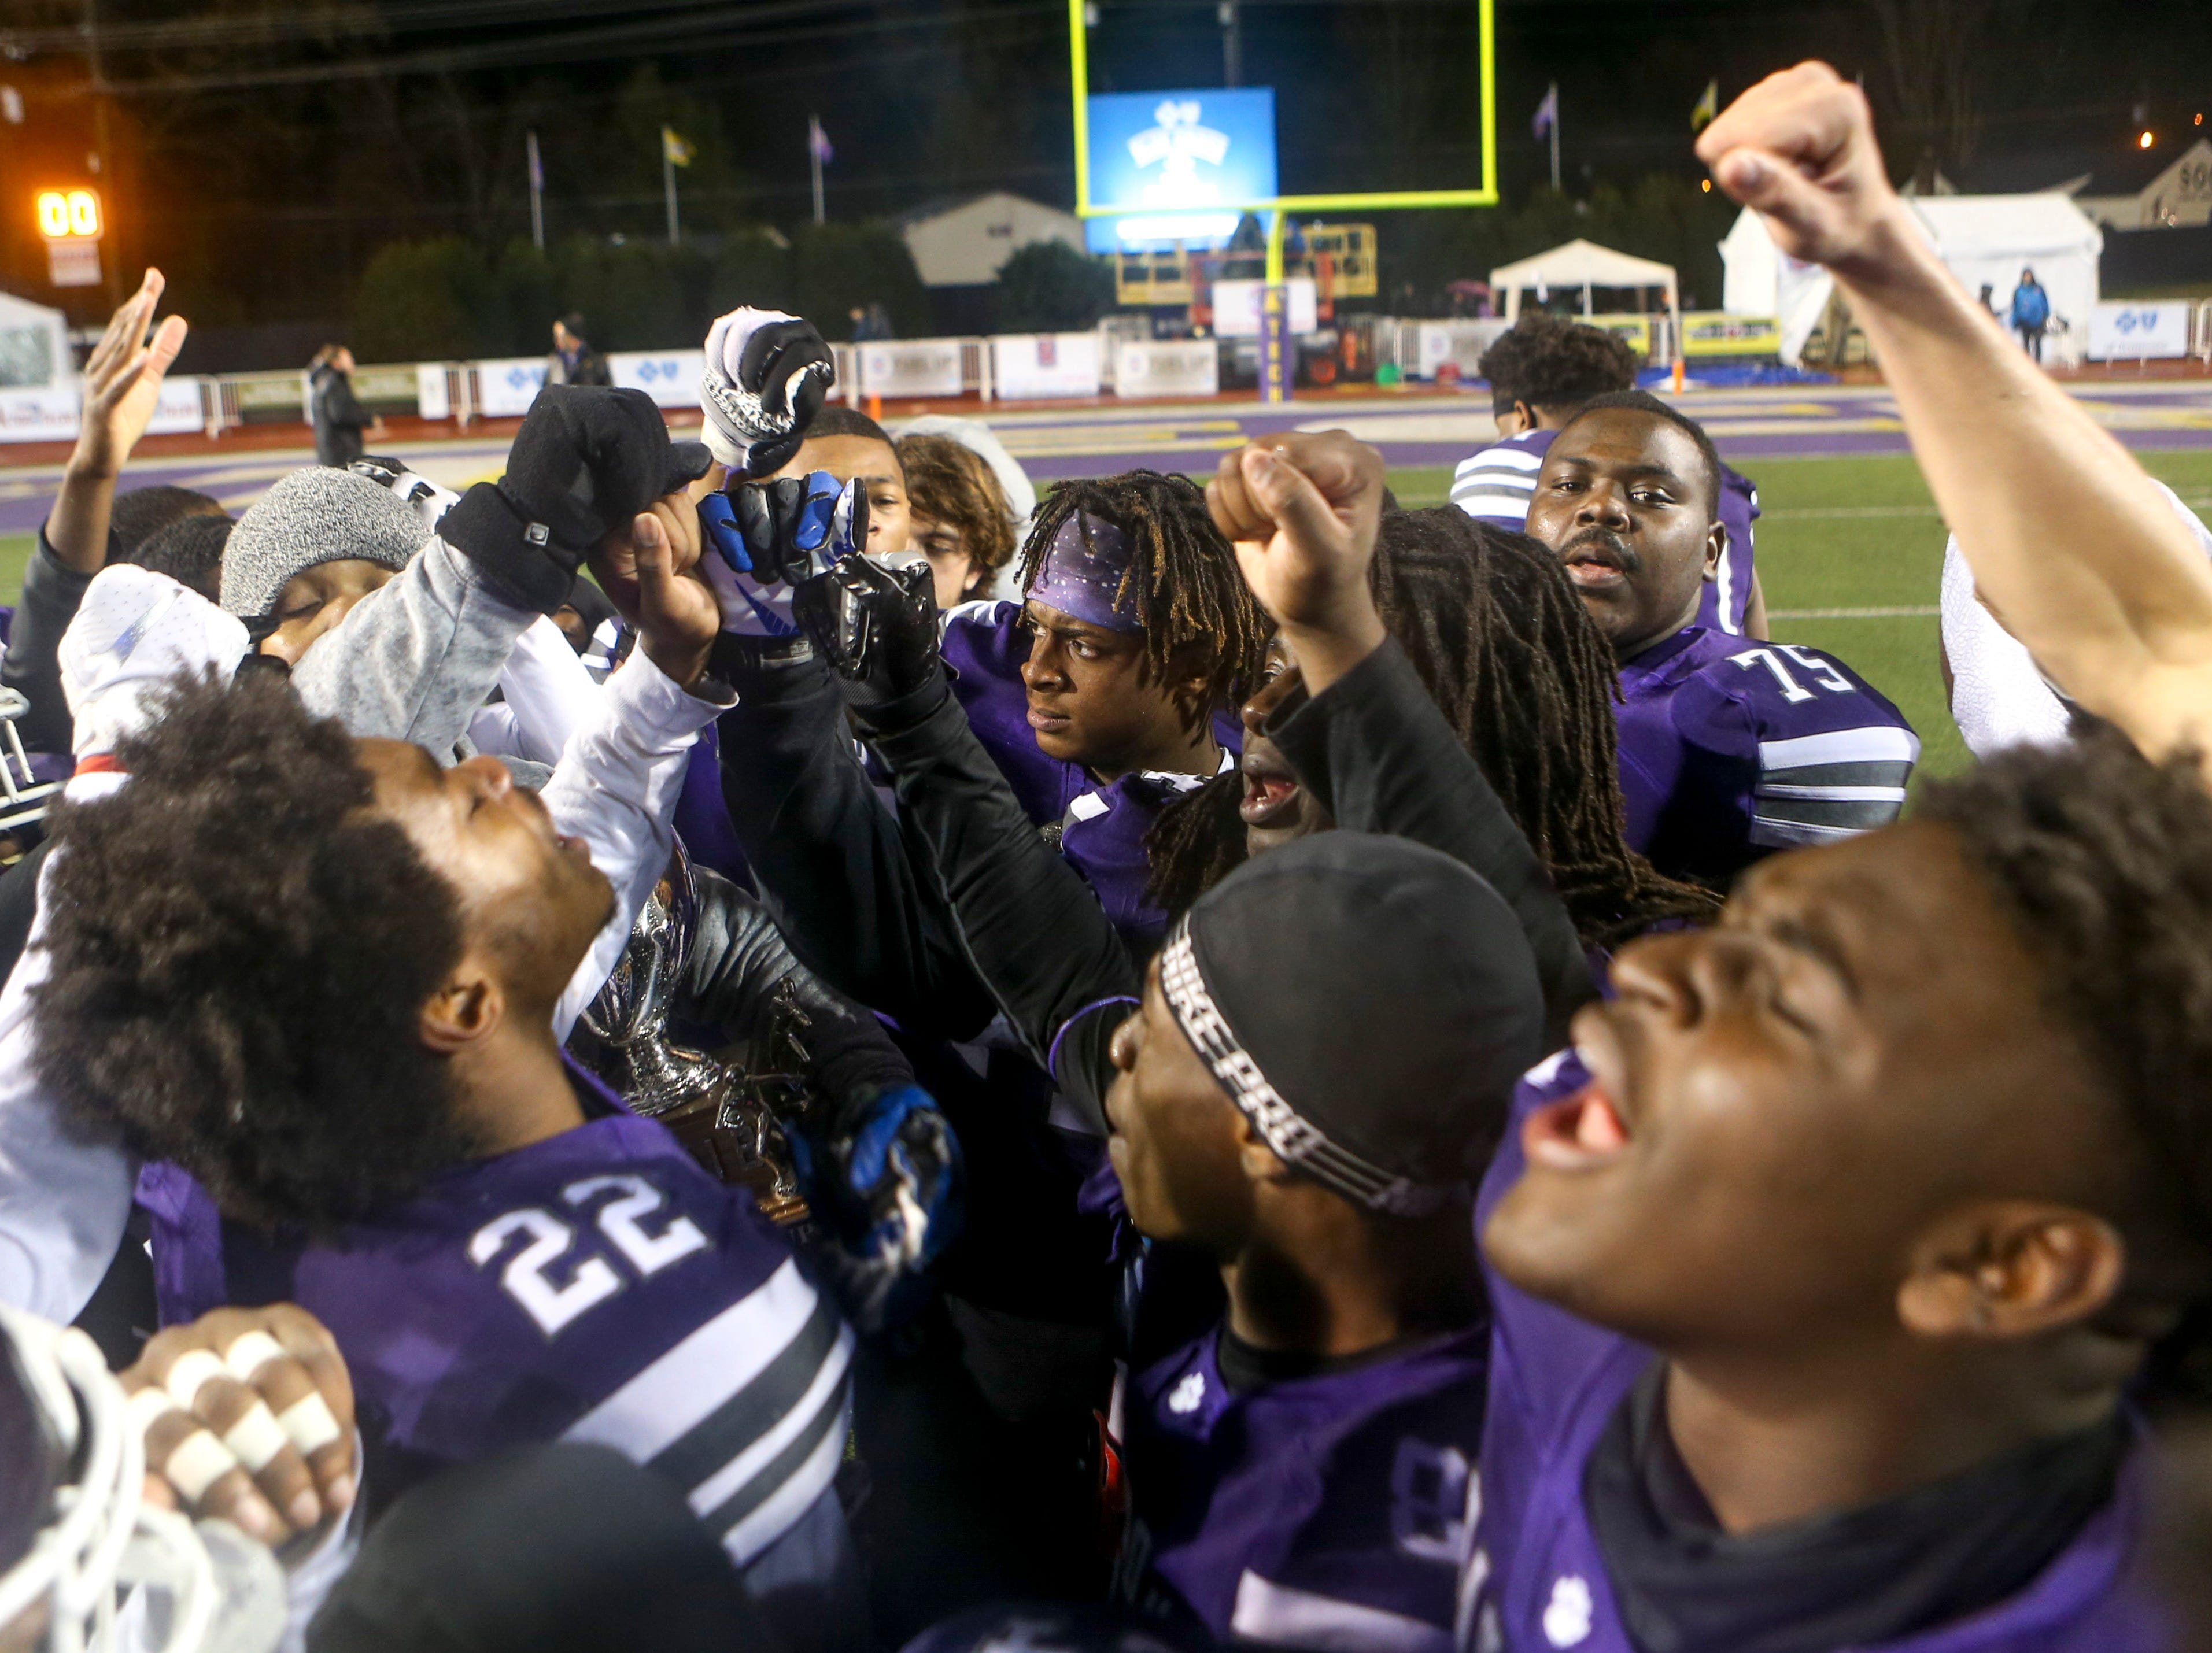 For one last time in the 2018 season the Haywood Tomcats throw fists up and chant as a team after losing the Class 4A Blue Cross Bowl between Haywood and Greeneville at Tennessee Tech's Tucker Stadium in Cookeville, Tenn., on Thursday, Nov. 29, 2018.